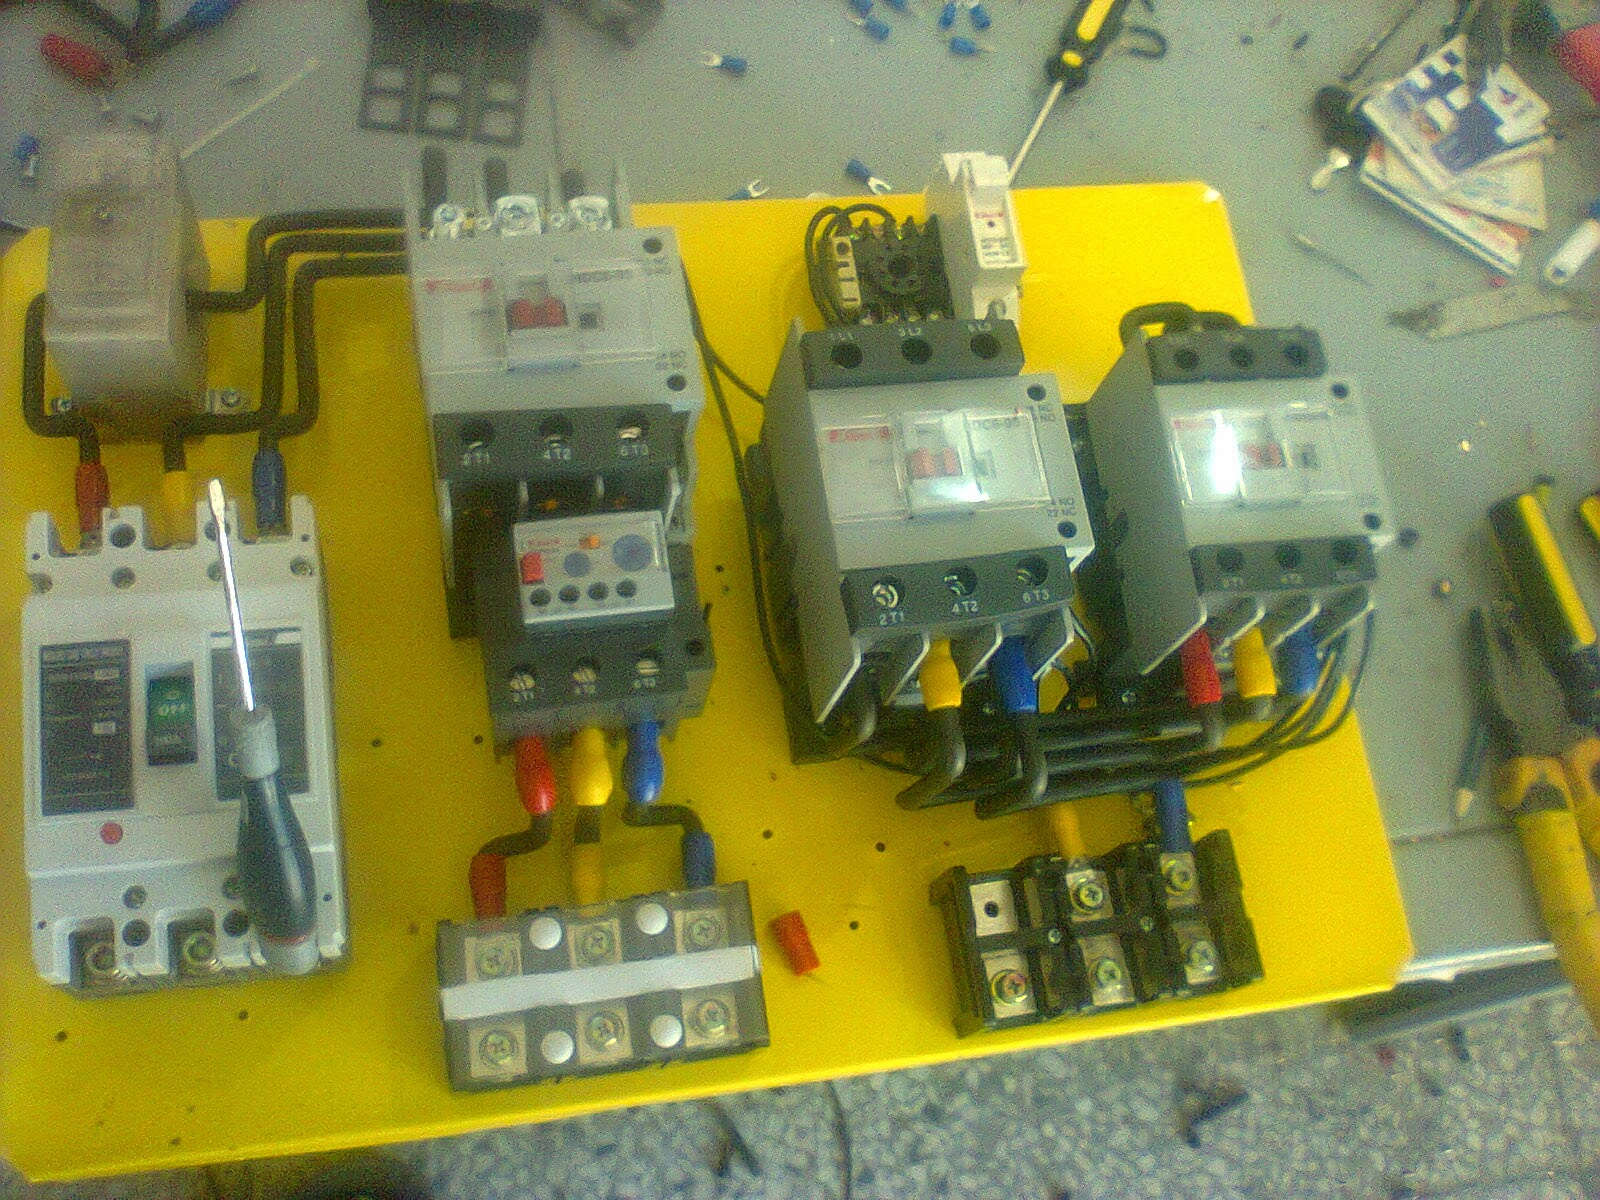 Star Delta 3 Phase Motor Automatic Starter With Timer Electrical 1 Control Wiring Diagram Note That One Of The Contactor Acts As A Switch For Start Button Effectively Looking Closed